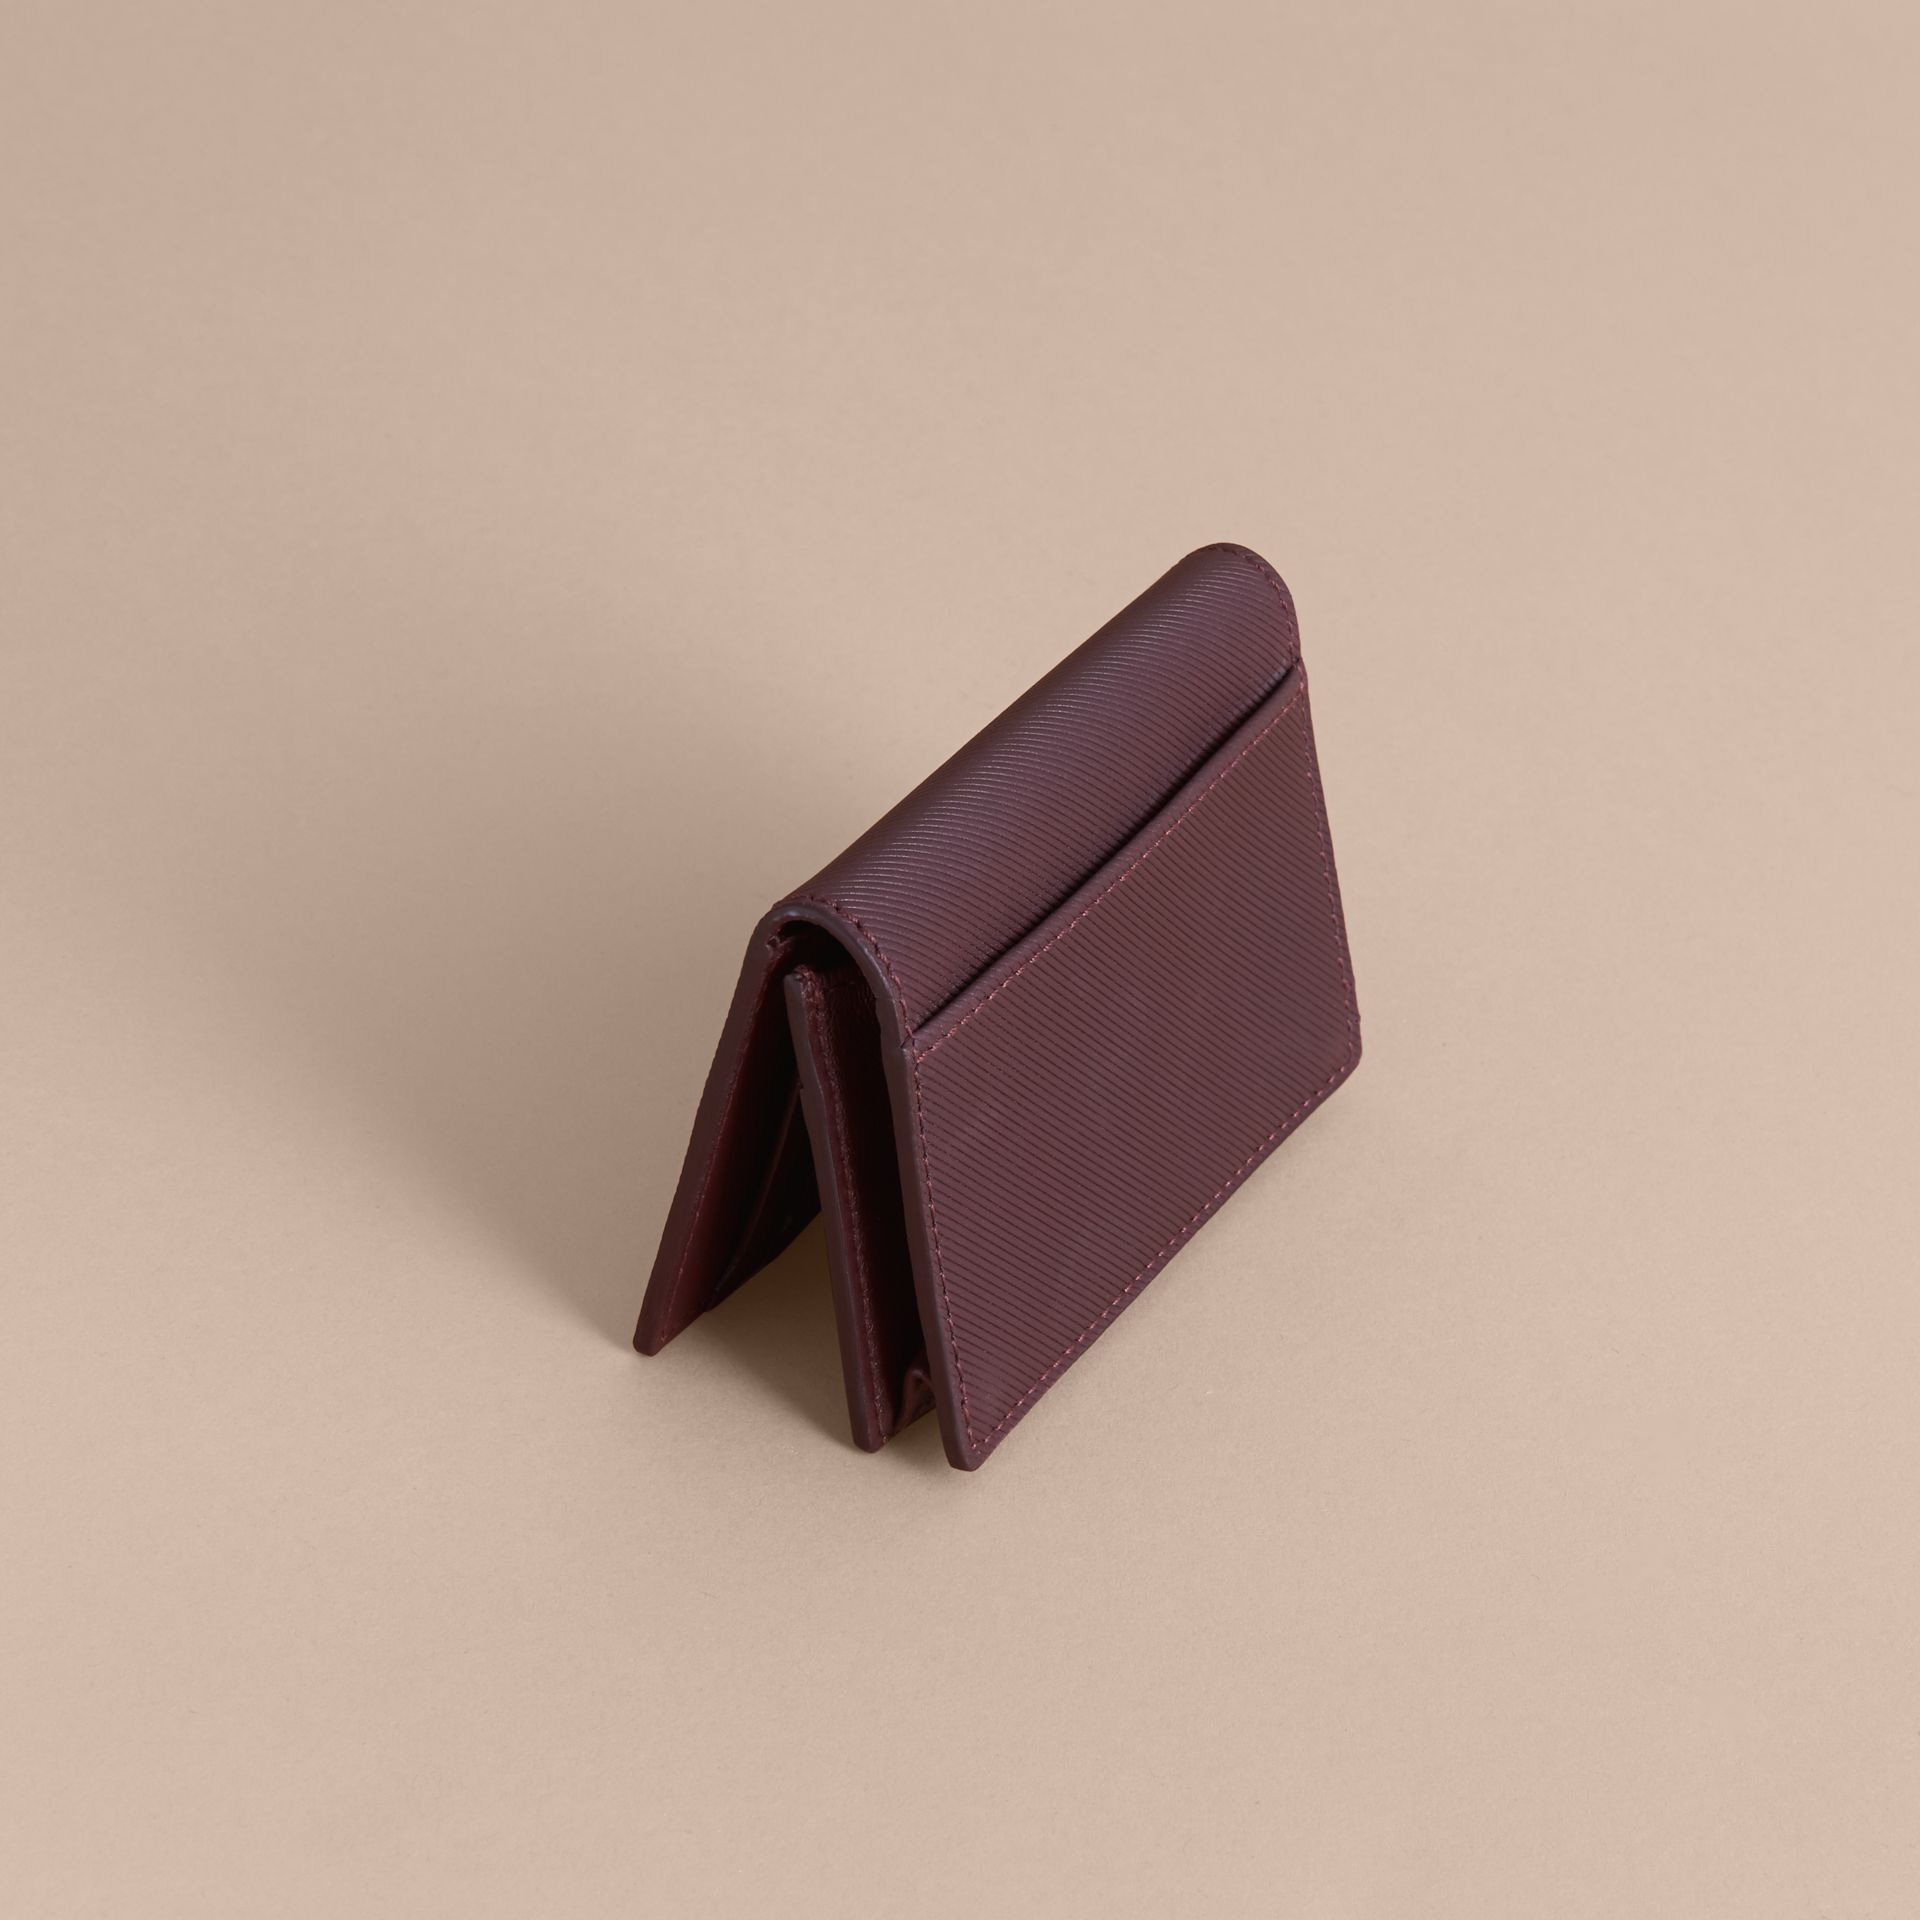 Trench Leather Folding Card Case in Wine - Men | Burberry - gallery image 3